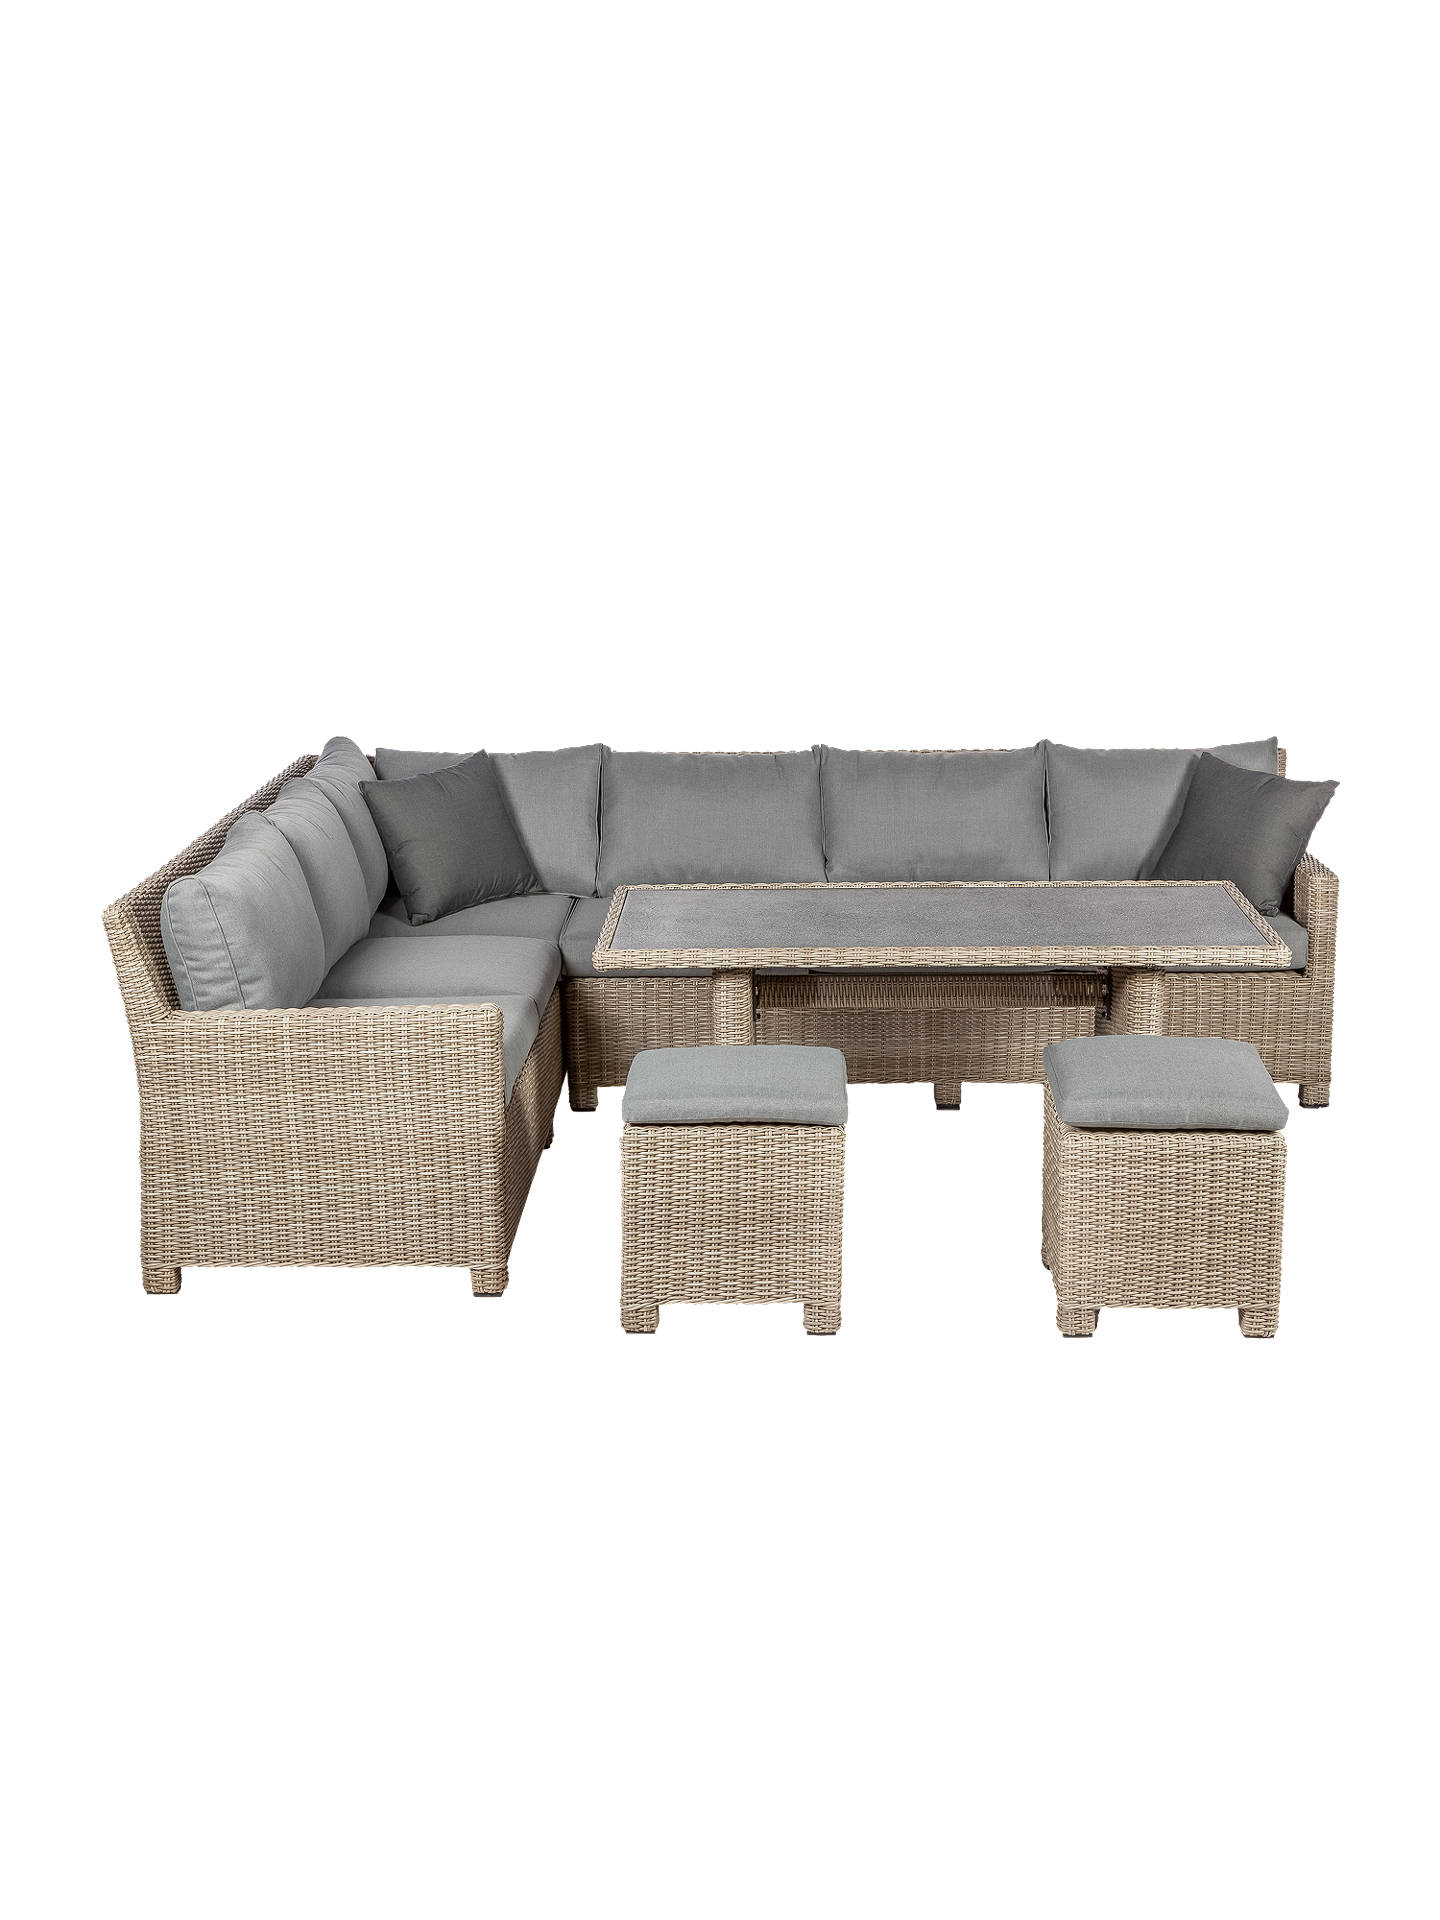 Buy Royalcraft Wentworth 6 Seater Garden Modular Corner Dining Table and Chairs Set, Grey Online at johnlewis.com